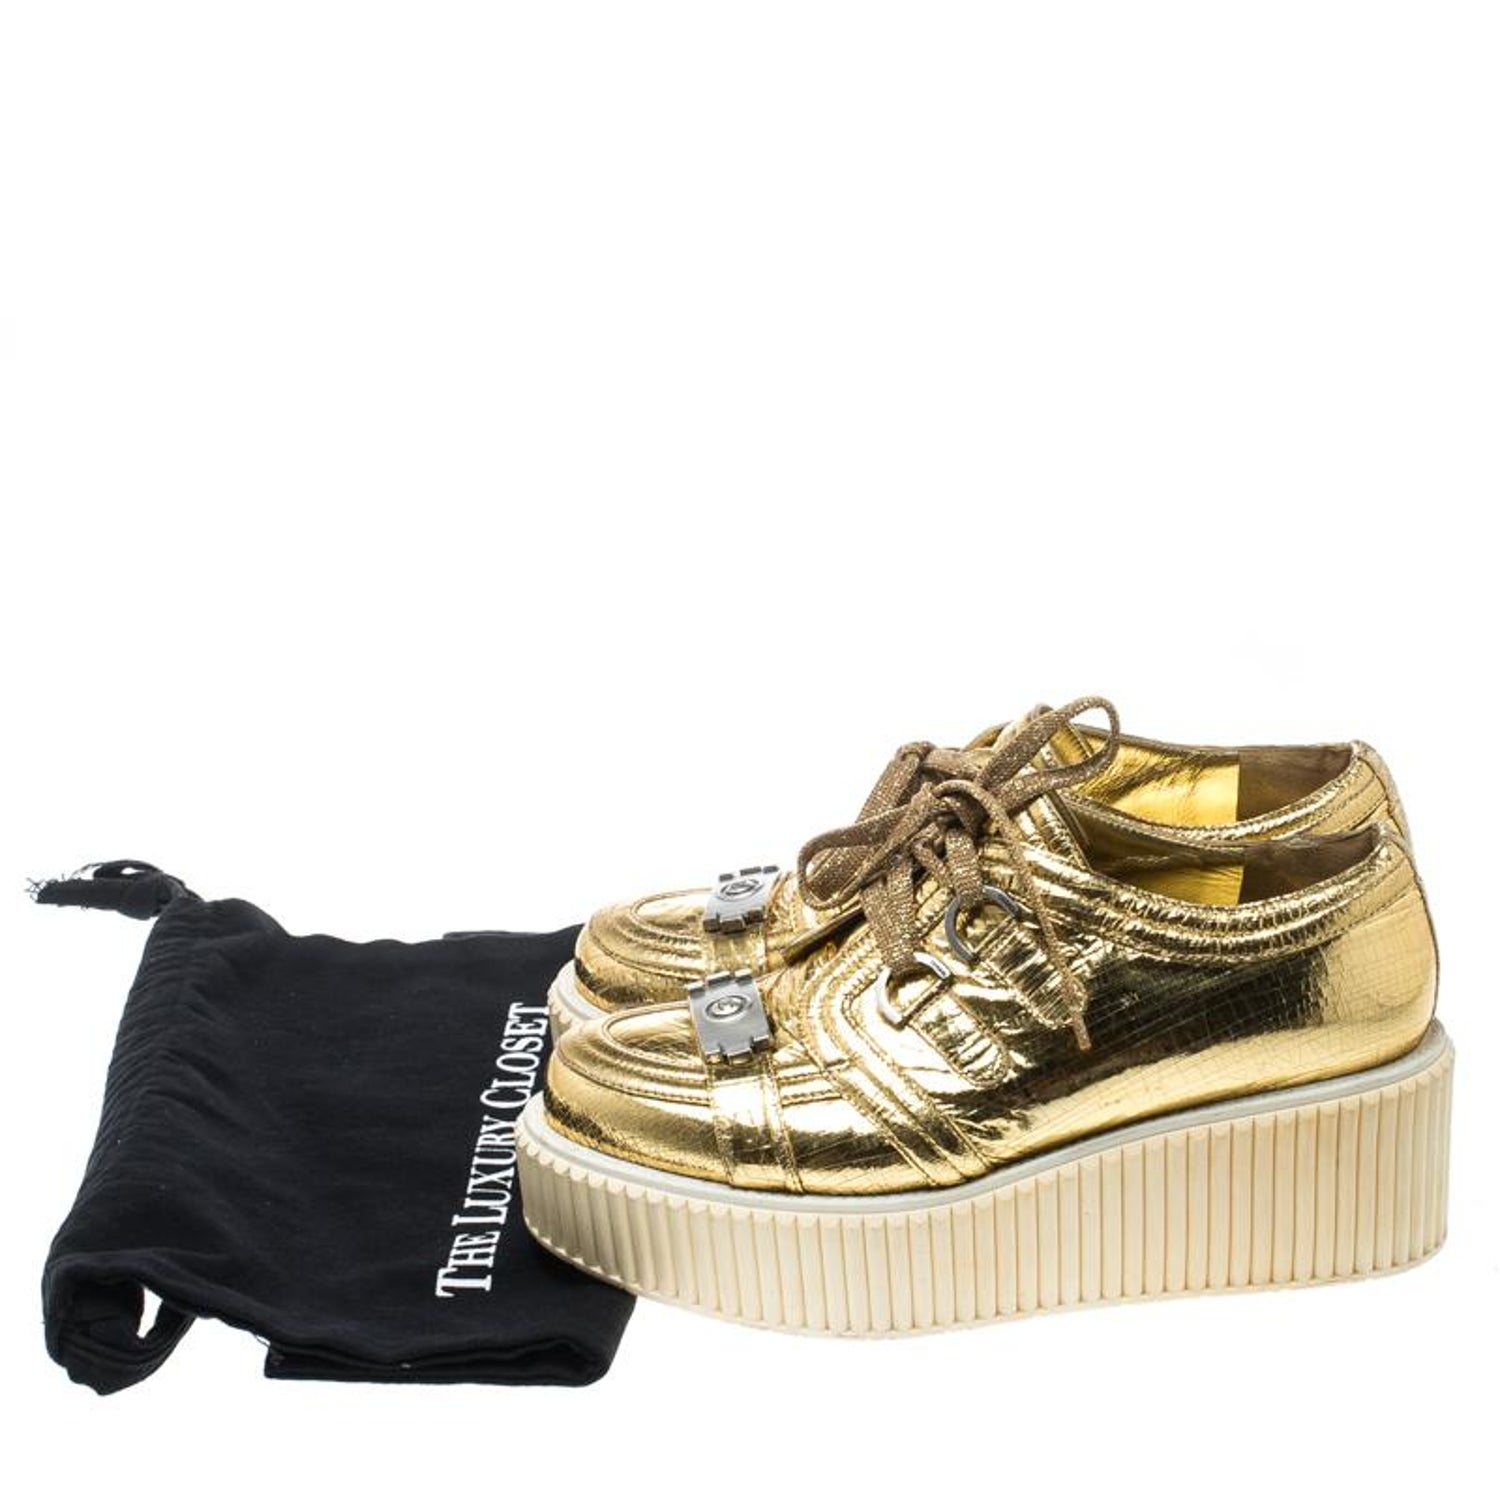 17f4ee2f6f5 Chanel Metallic Gold Distressed Foil Leather Creepers Platform Sneakers  Size 39. at 1stdibs